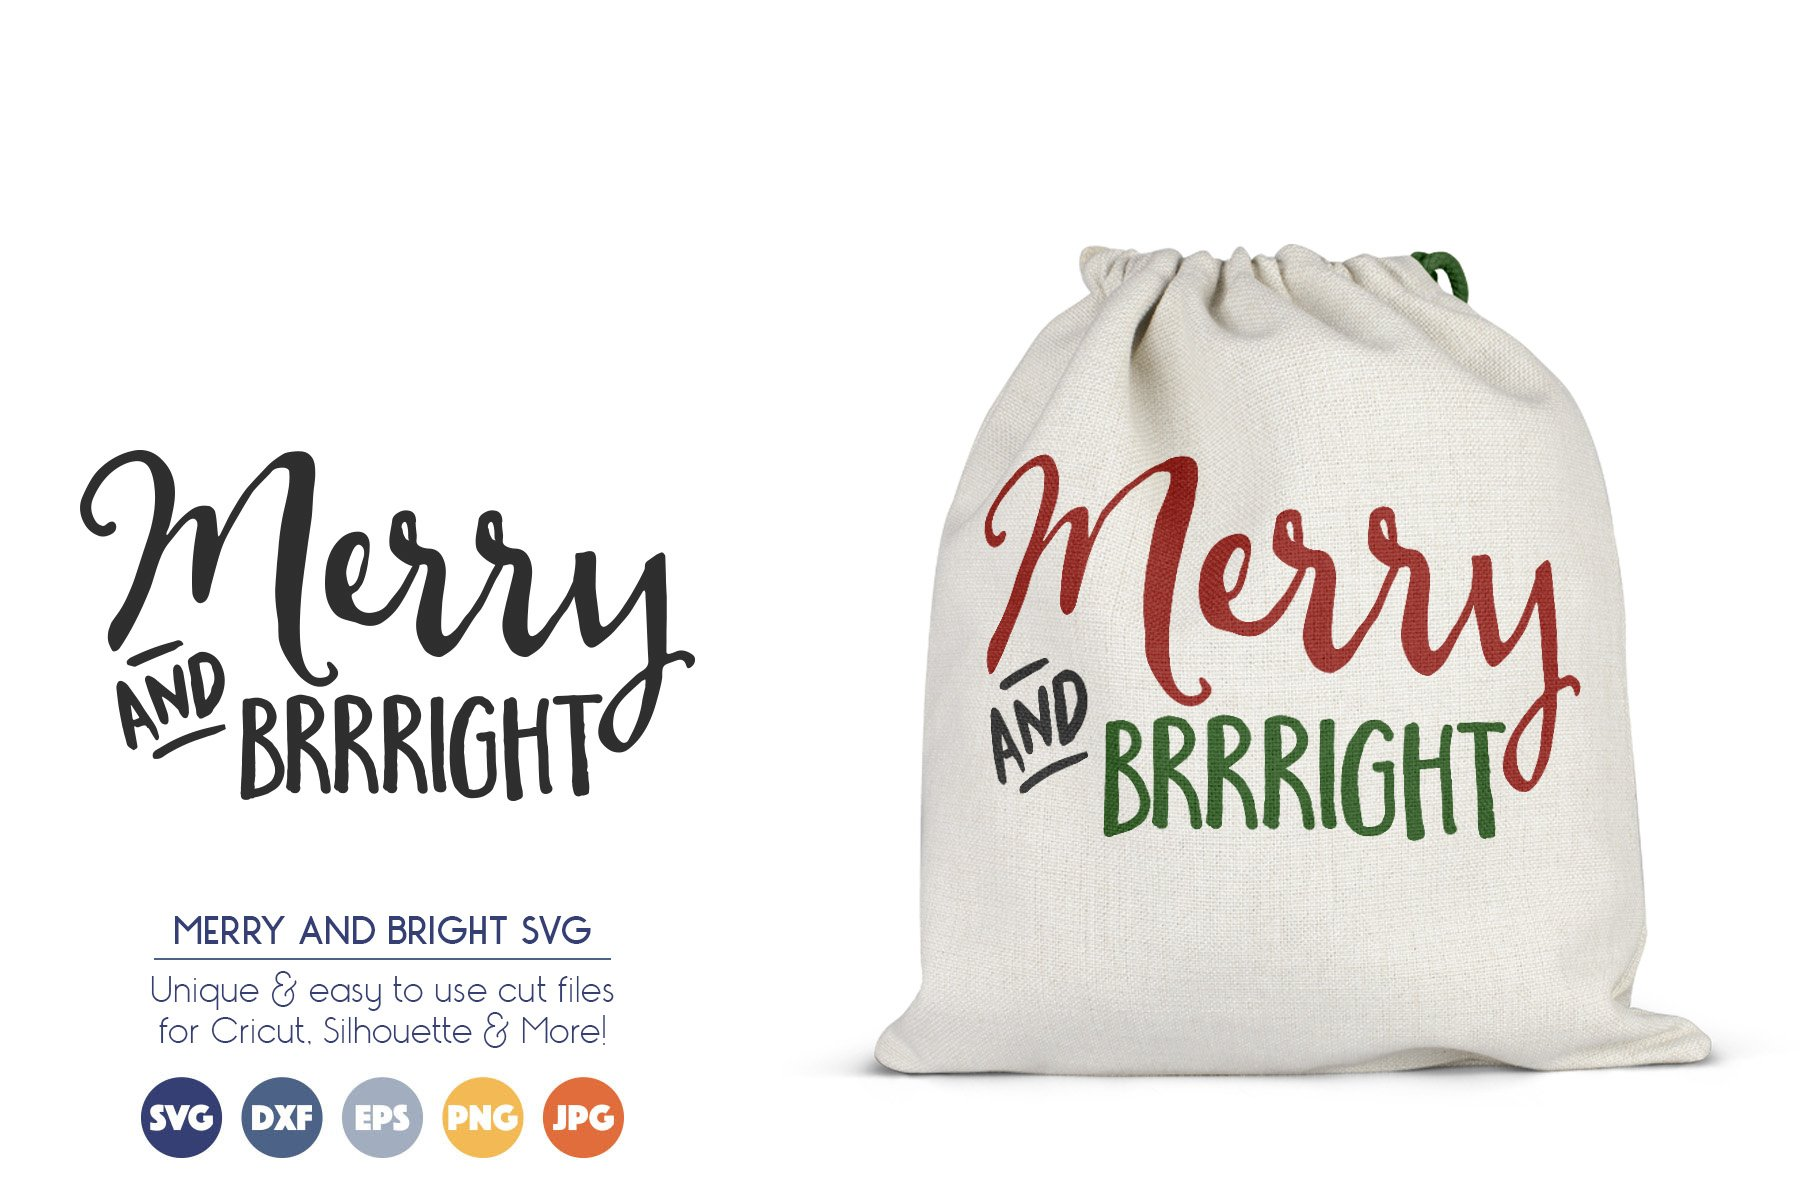 Merry and Bright - Cute Christmas SVG Files example image 1